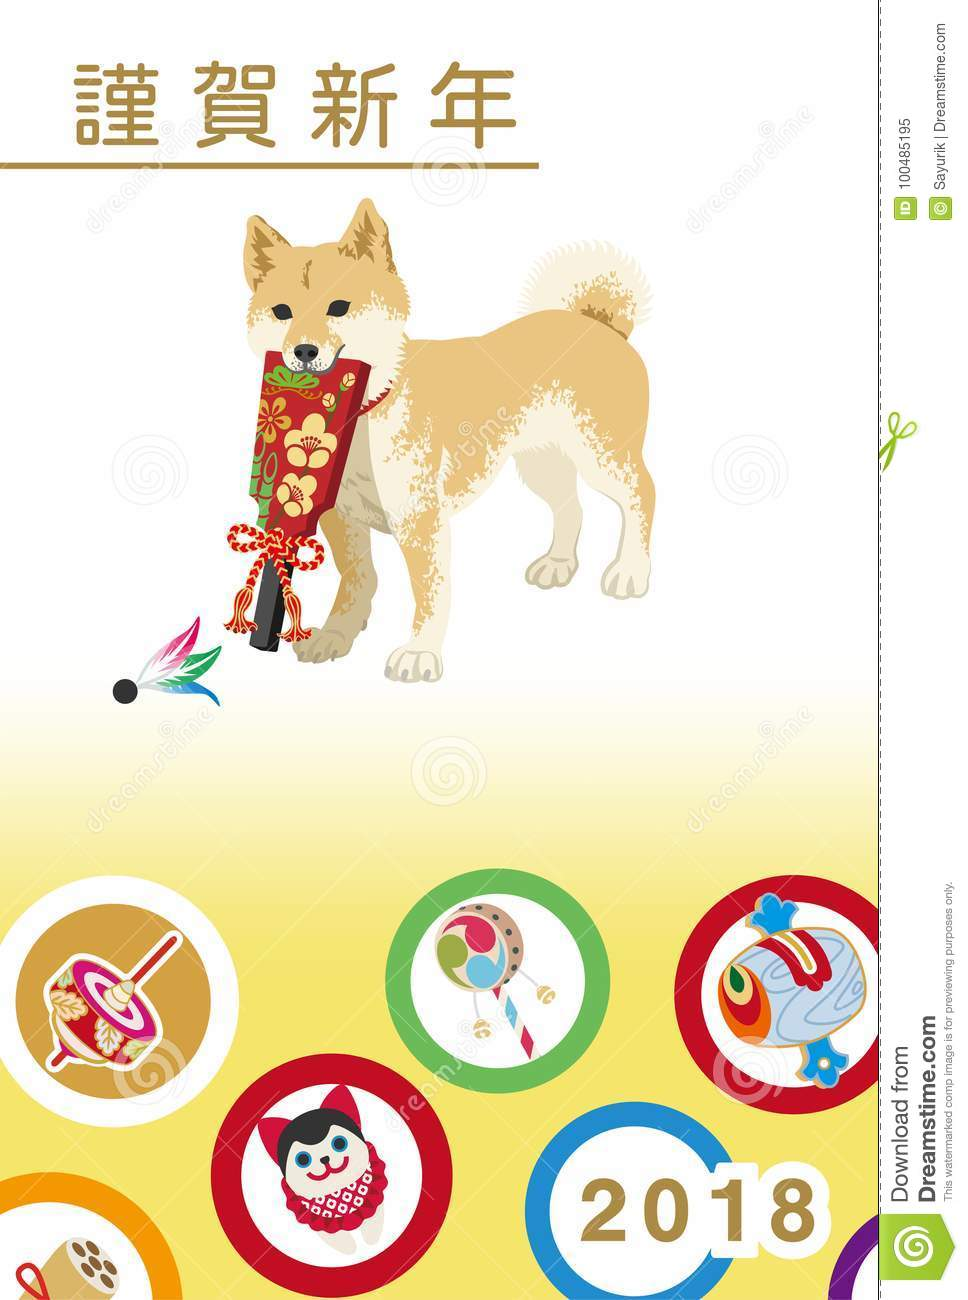 japanese new year card 2018 shiba inu and battledore